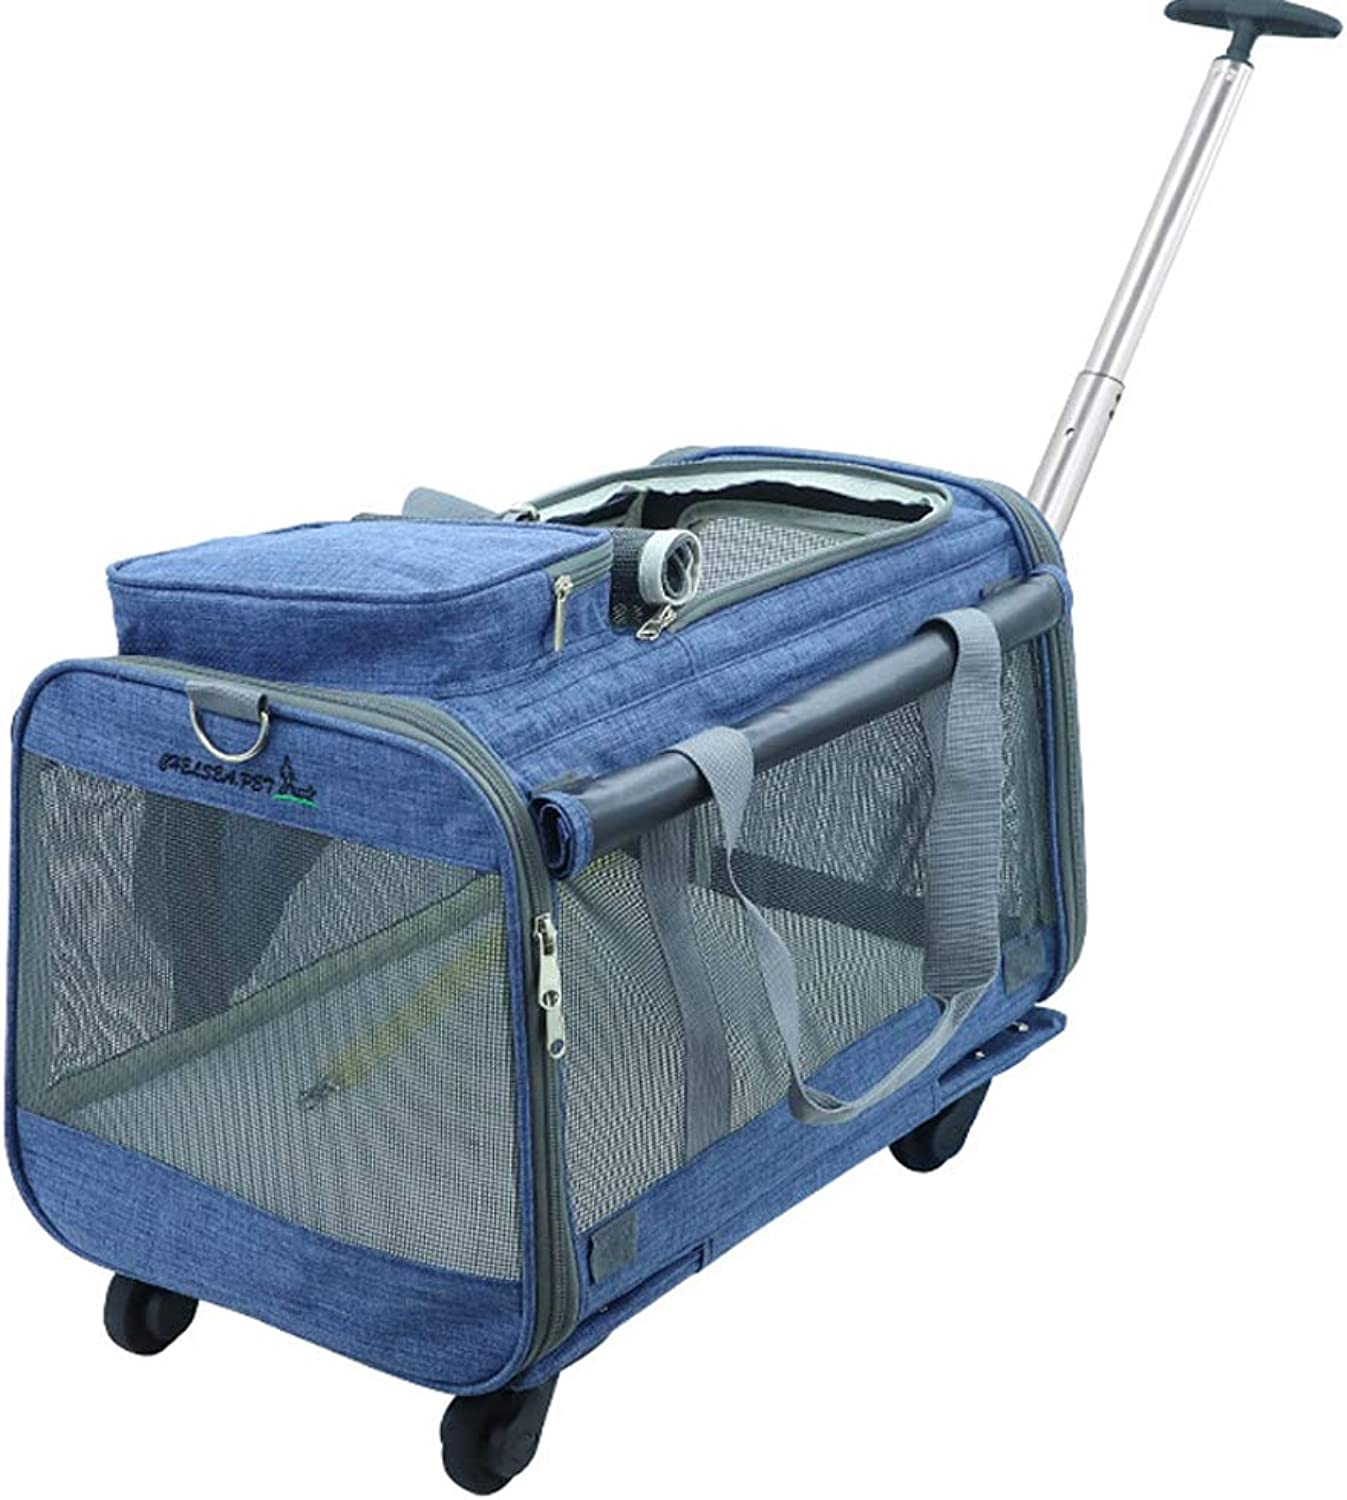 Rantow Foldable Pet Carrier with Removable Wheels  20  x 12 x 11   Rolling Carrier Bag Strollers for Cats Dogs Rabbits Kittens Puppies Travel Hiking Camping (Denim bluee)